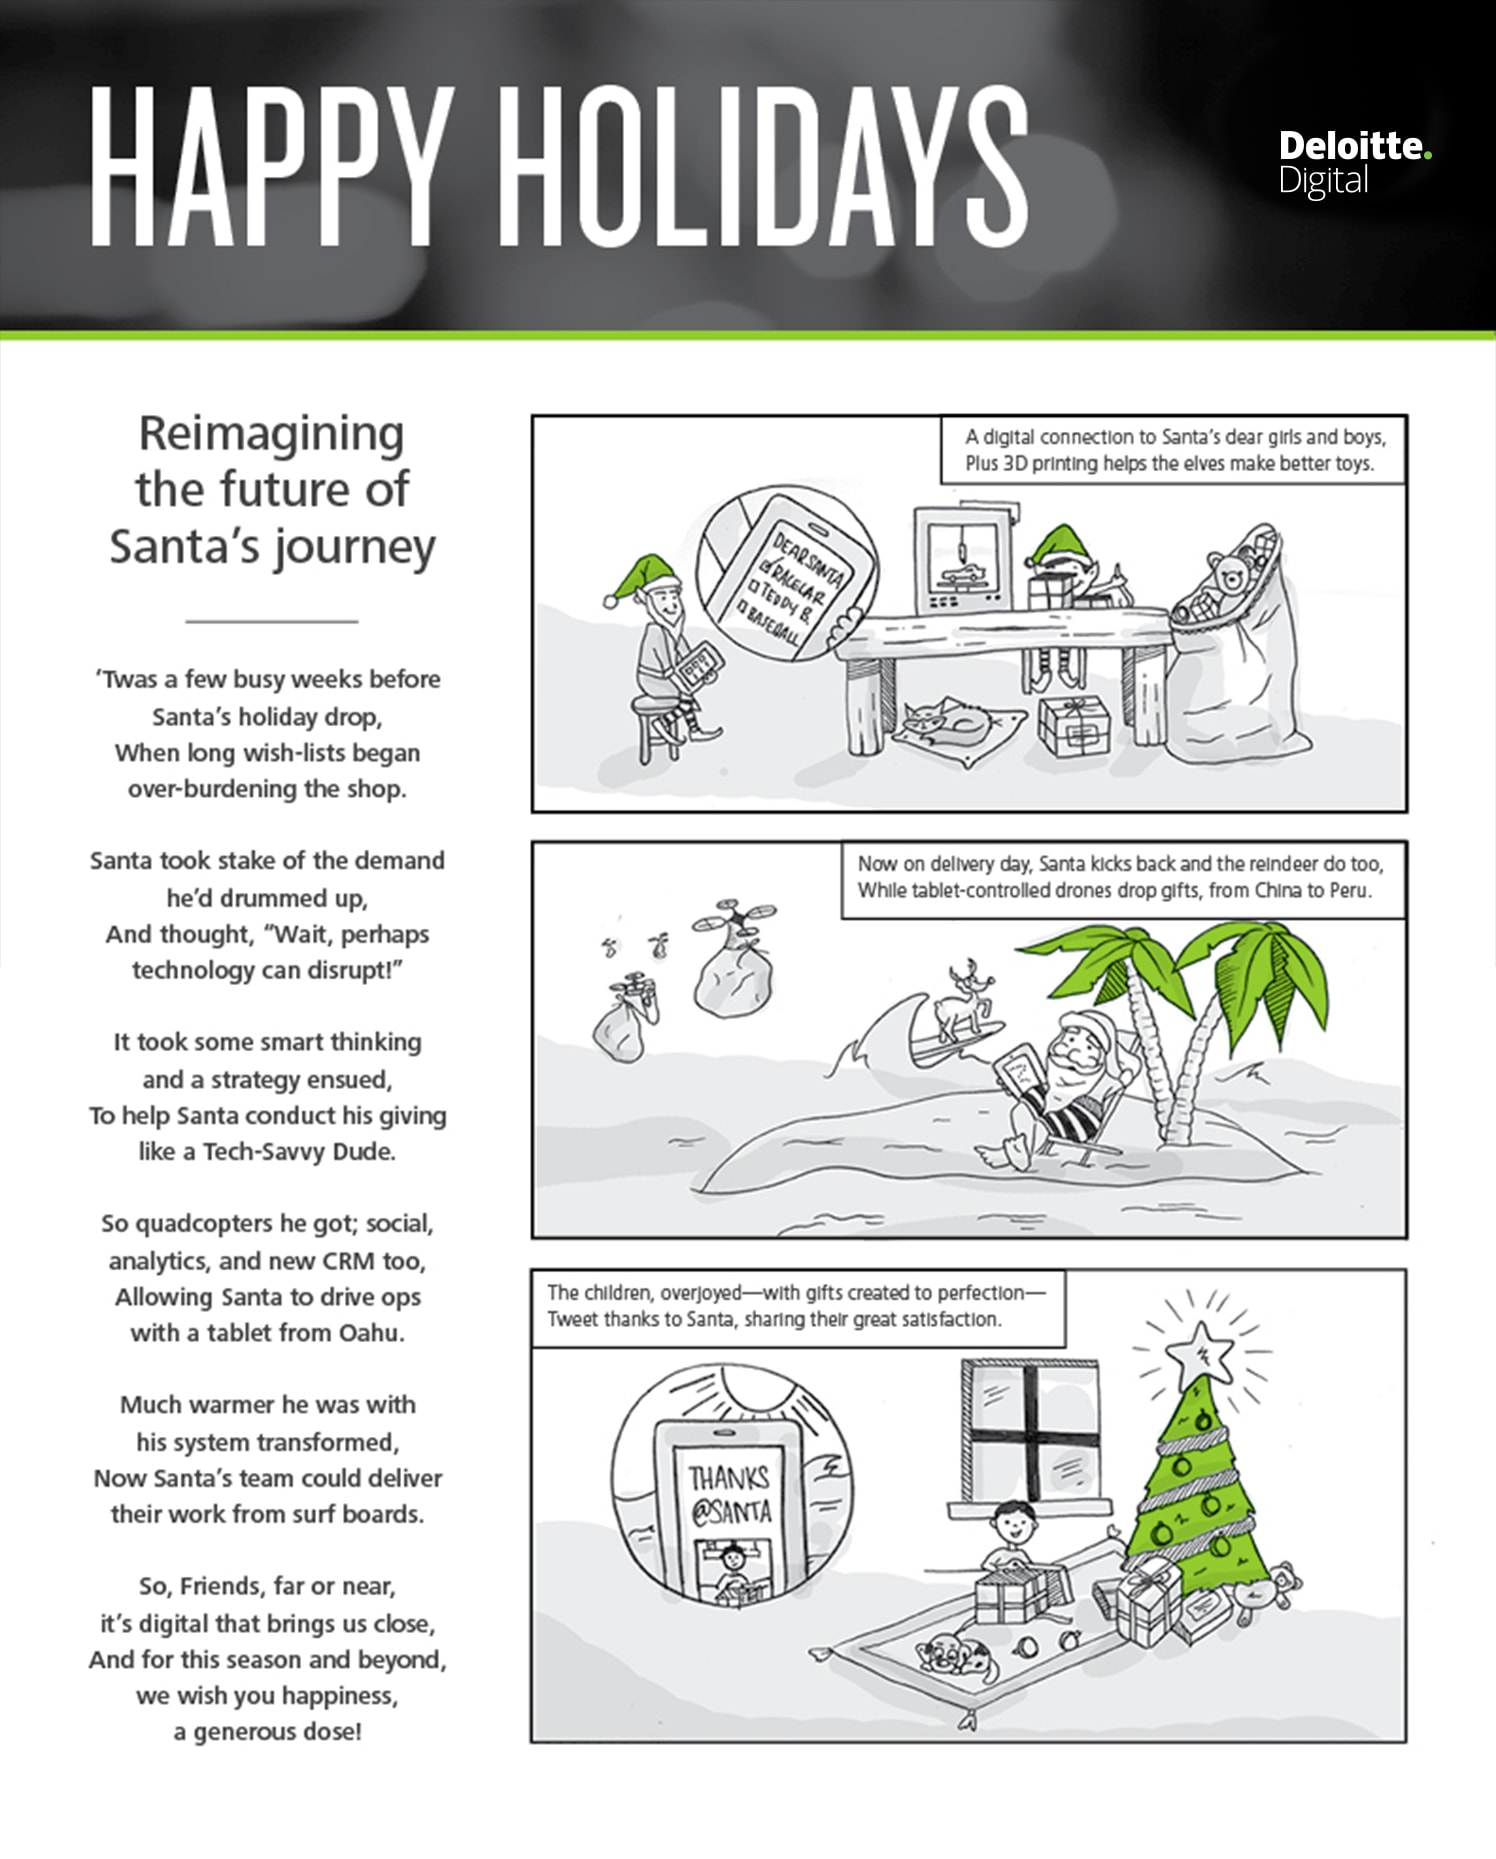 infographic with a poem and 3-frame comic describing Santa's reimagined workflow